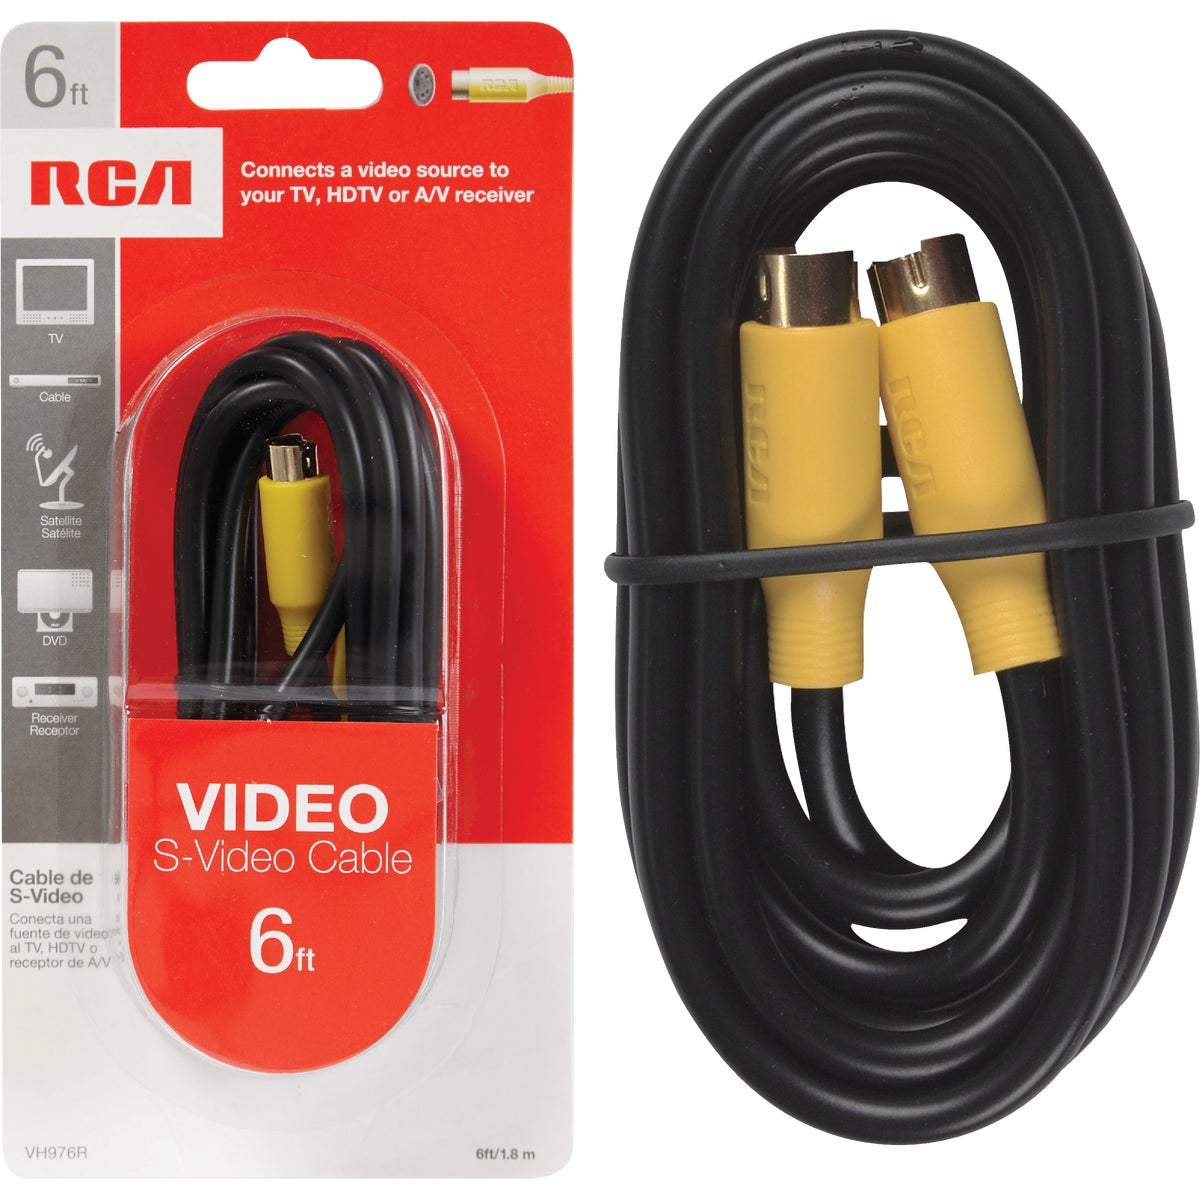 6' S-VIDEO CABLE